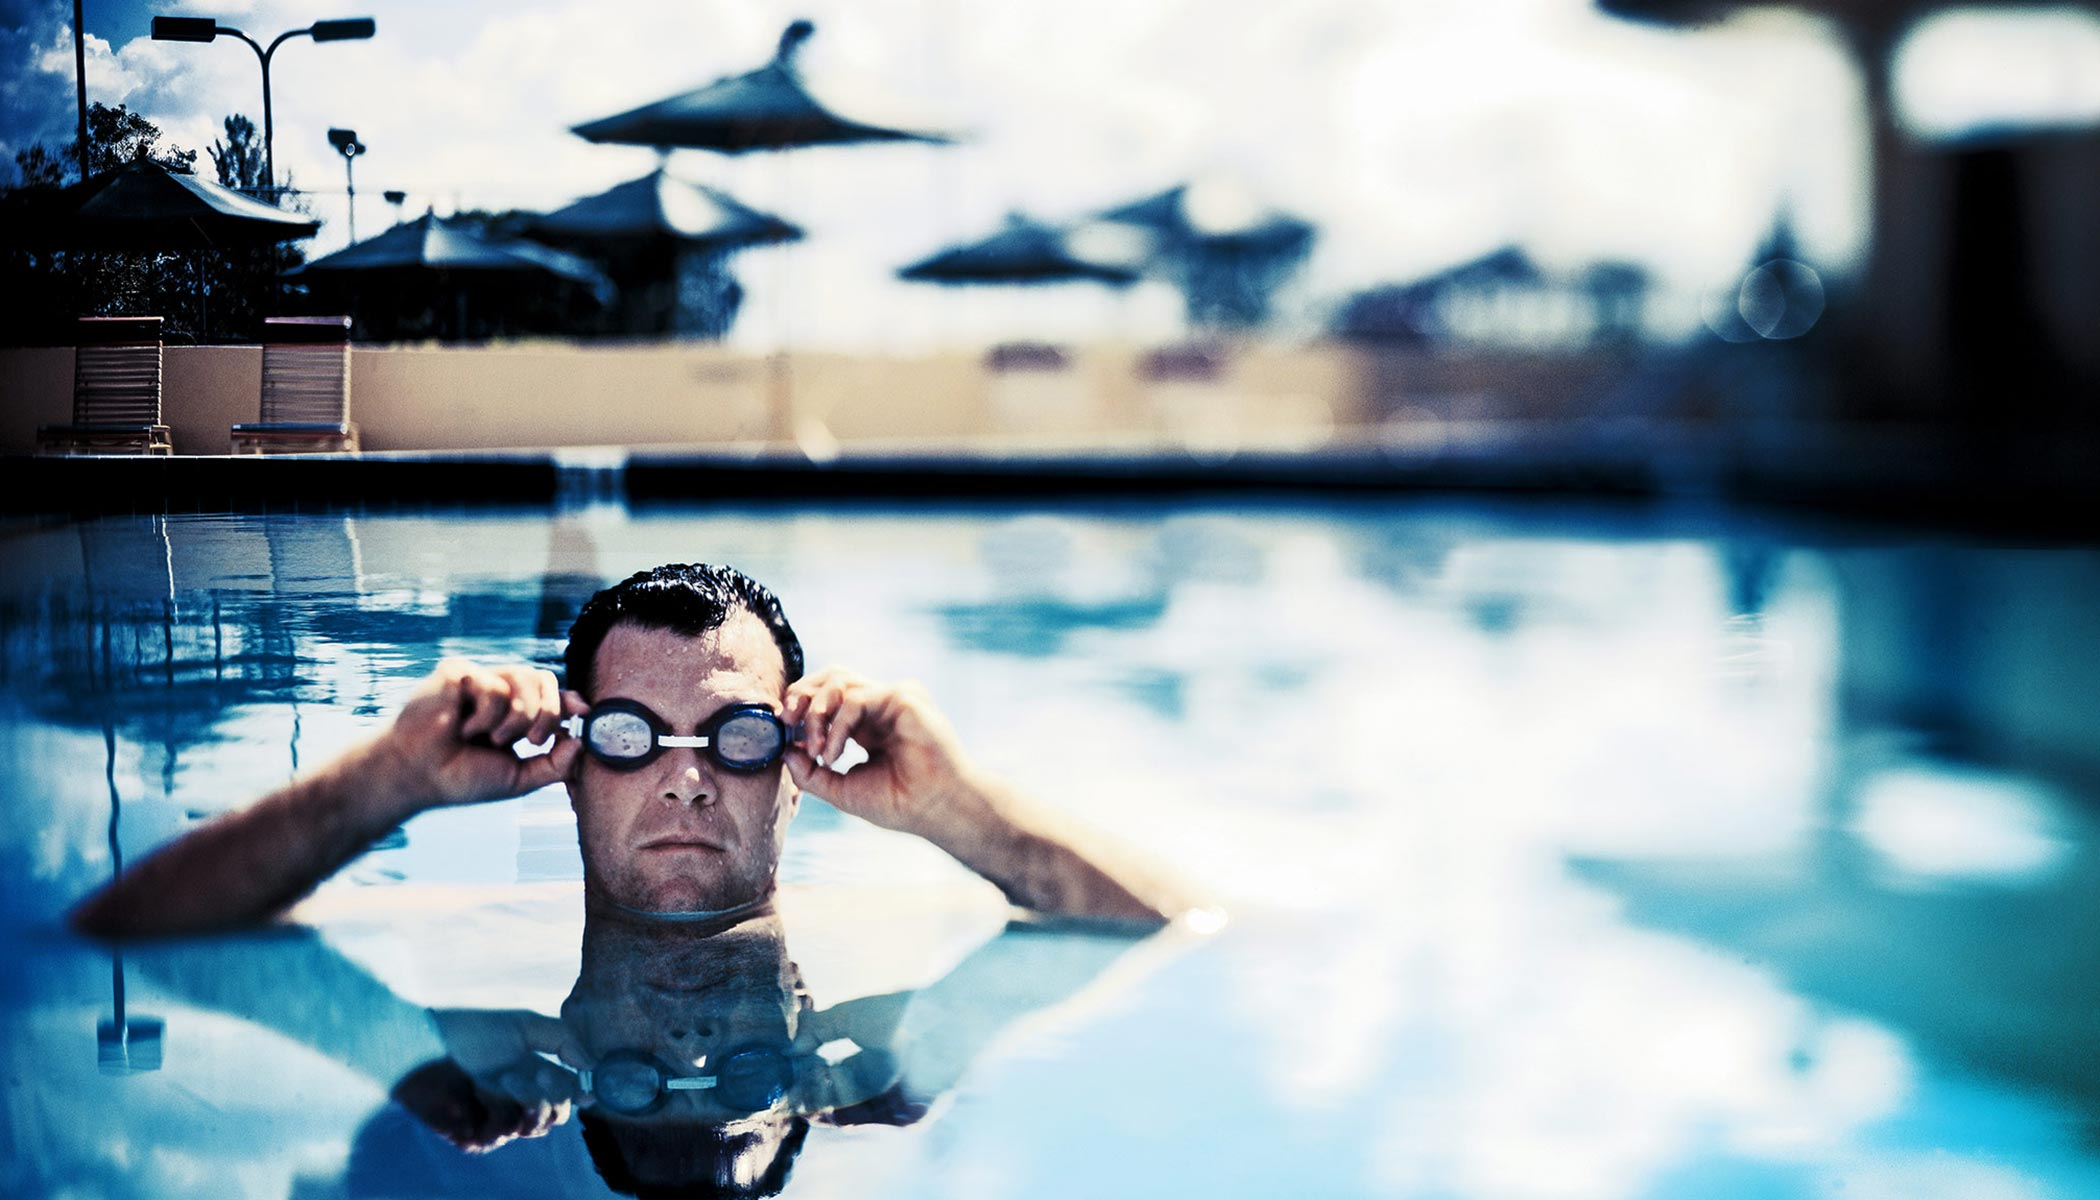 Faces-resort-man-in-pool-goggles